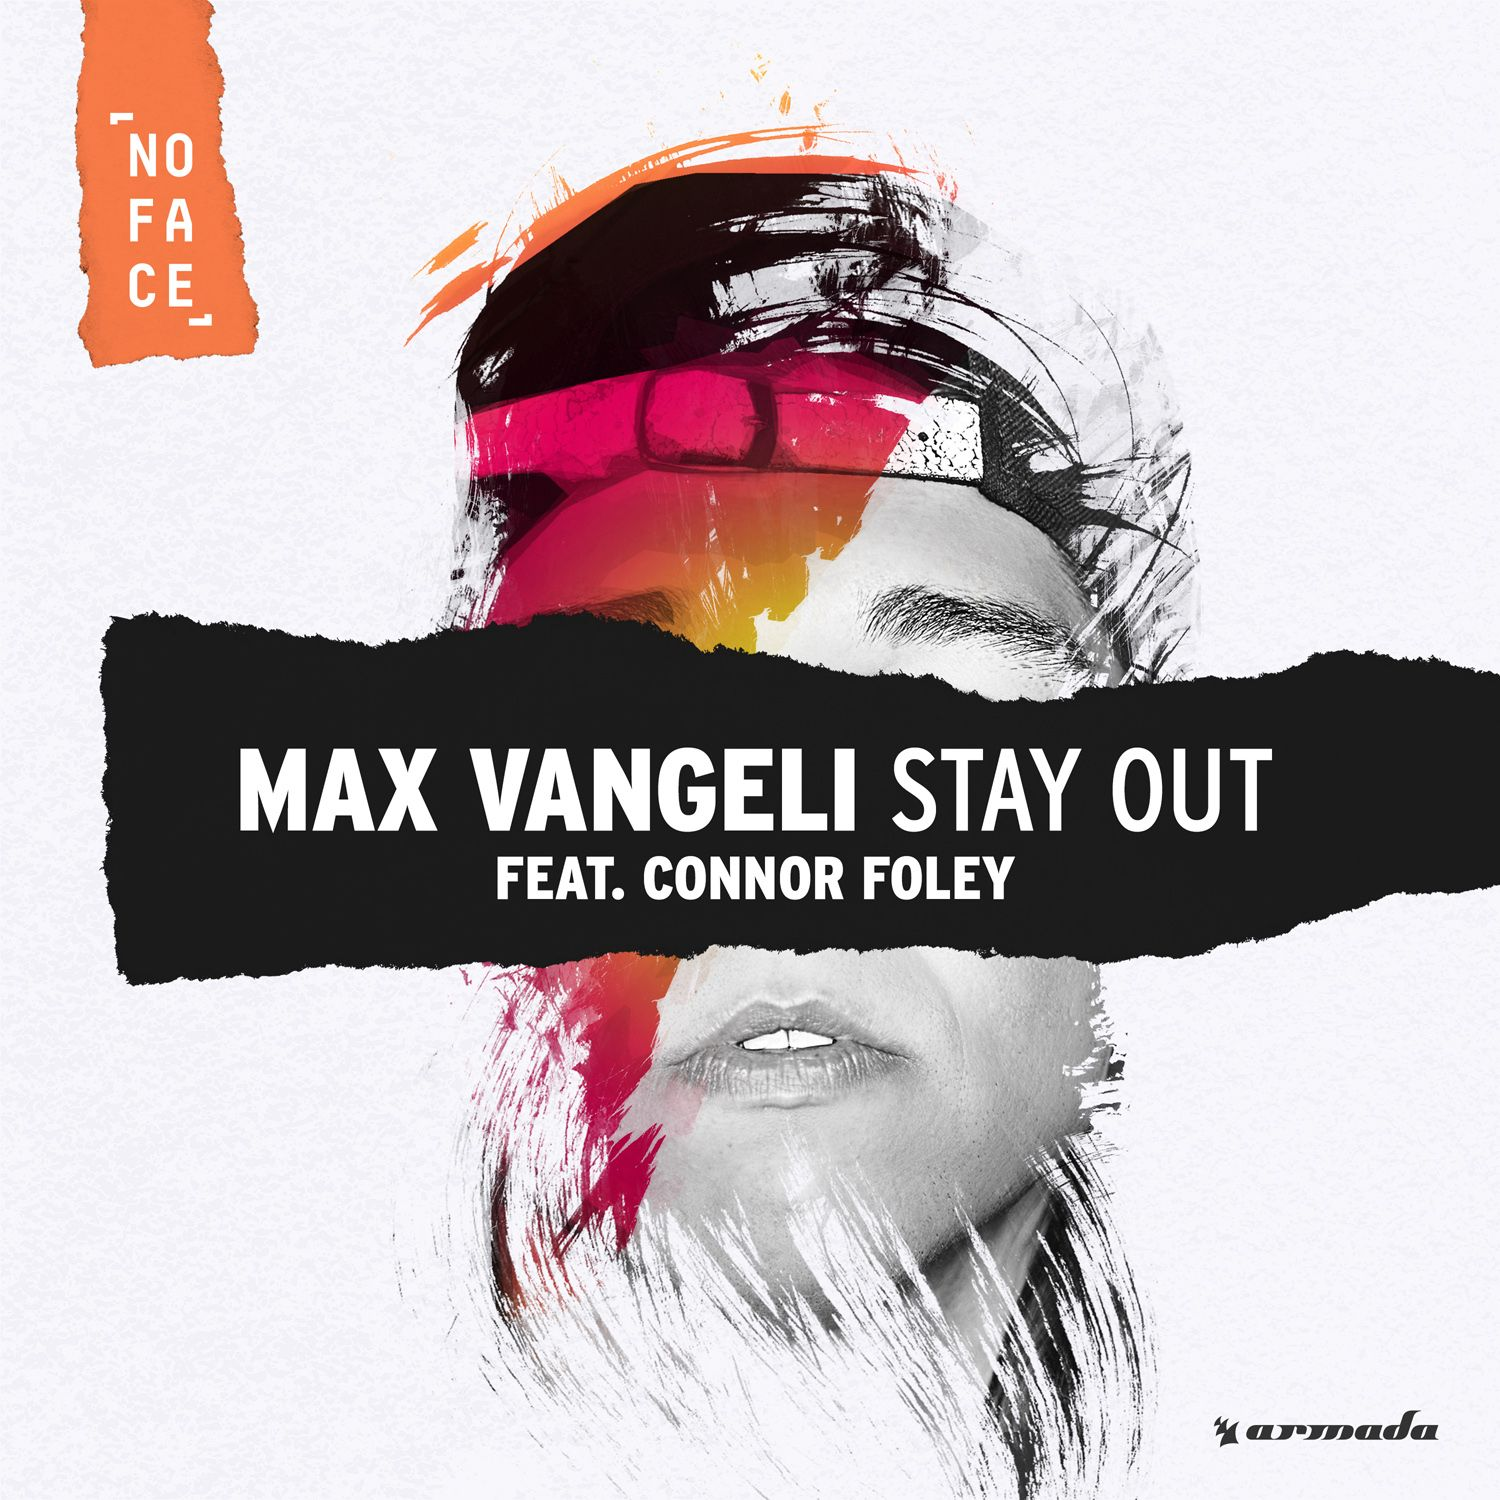 max_vangeli_-_stay_out_ft._connor_foley_artwork.jpg